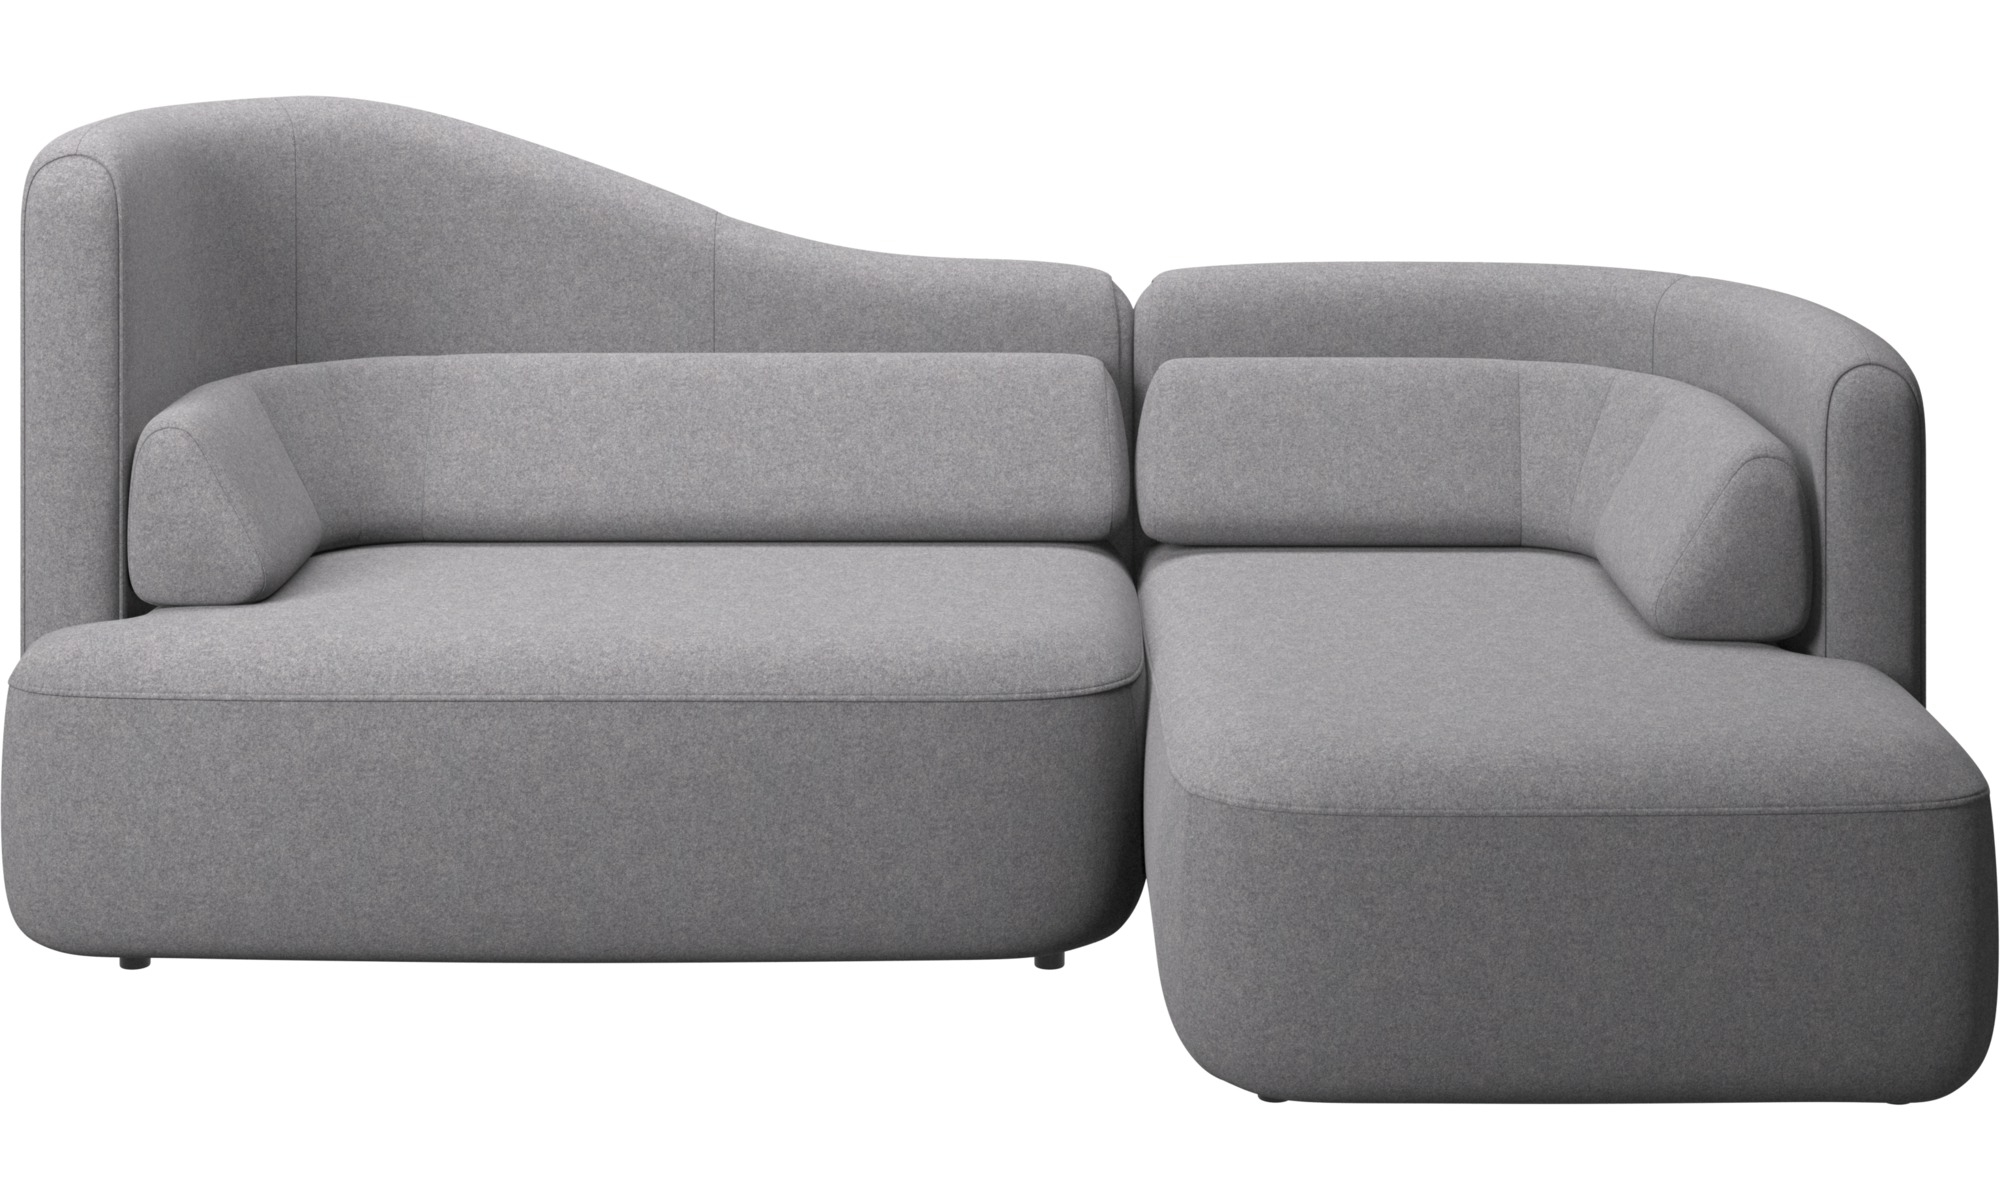 Famous Living Room : Modular Sofas For Small Spaces Space Saving Beds Intended For Small Modular Sofas (View 5 of 15)